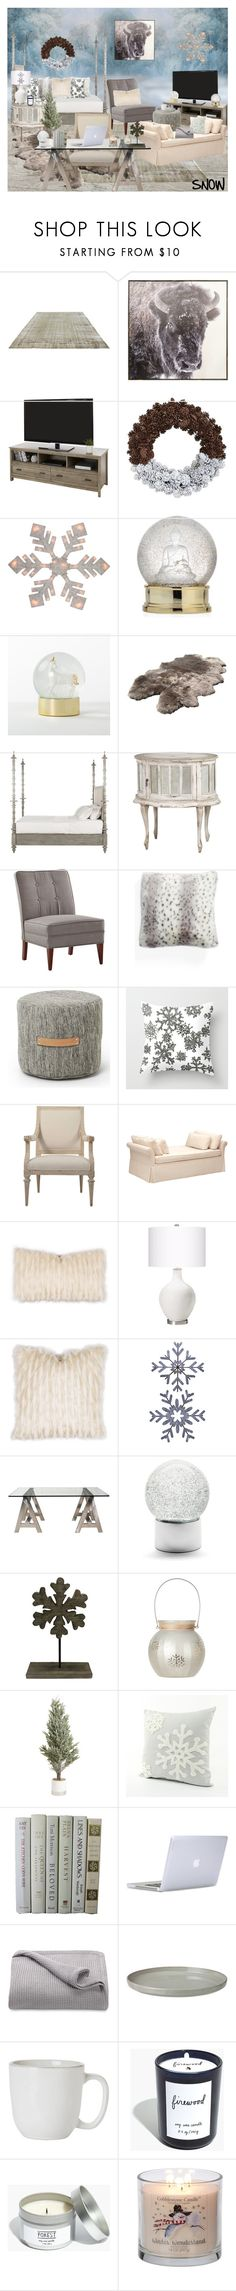 """""""SNOW"""" by sailorgirl ❤ liked on Polyvore featuring interior, interiors, interior design, home, home decor, interior decorating, New View, Northlight Homestore, Nordstrom and Design House Stockholm"""